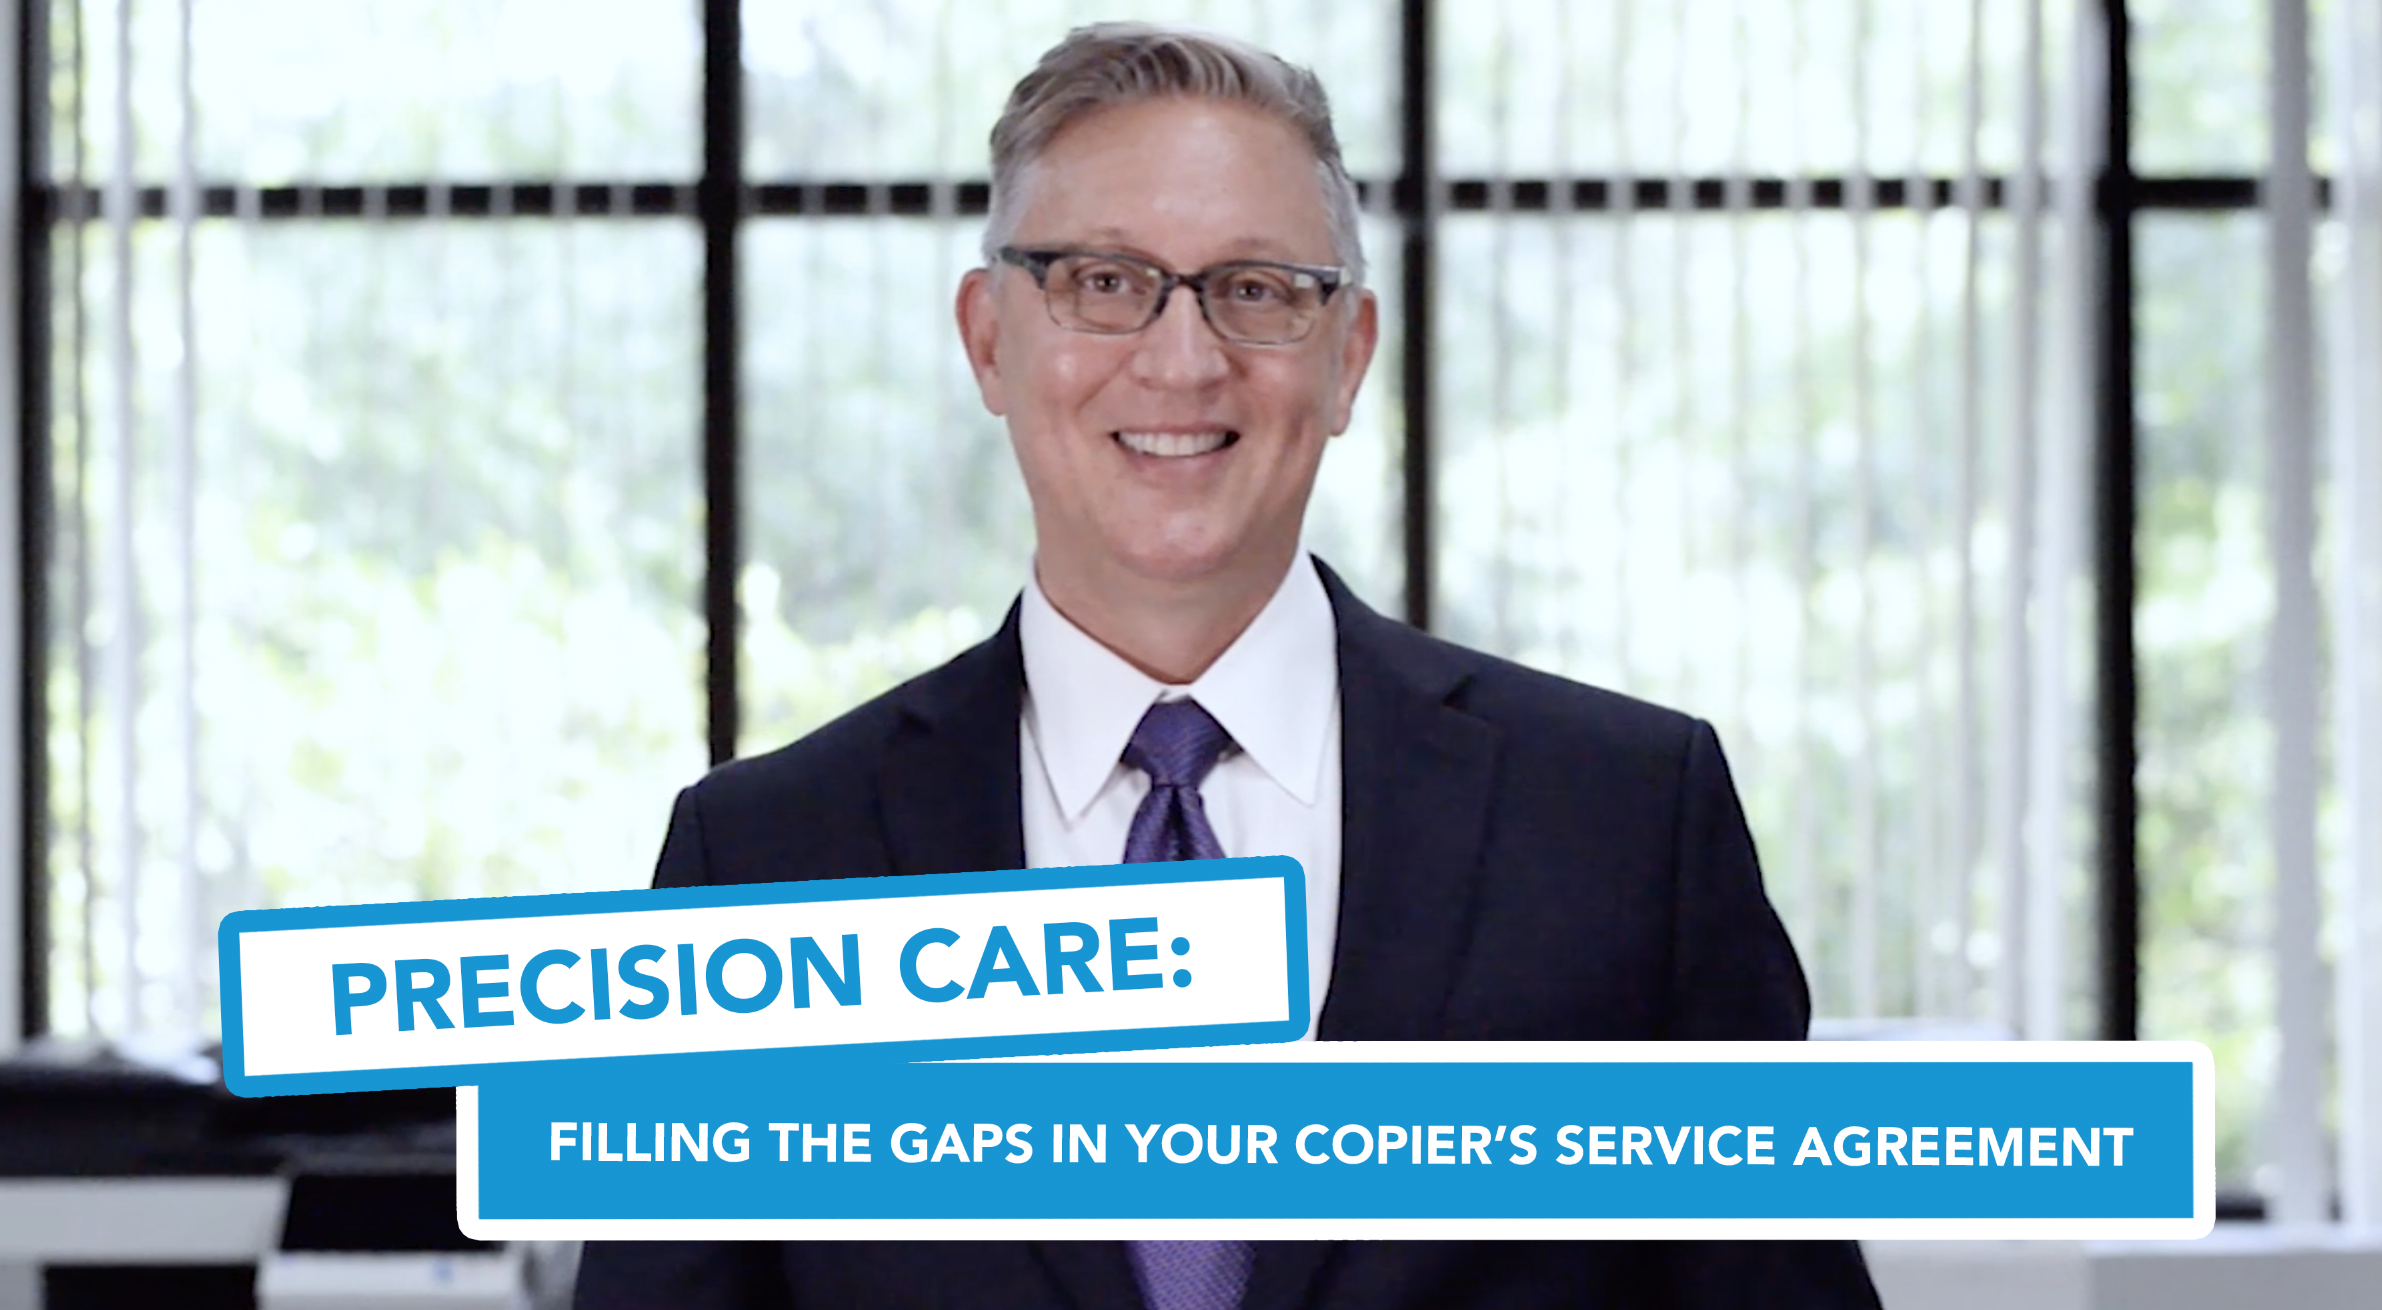 Filling the Gaps in Your Copier's Service Agreement